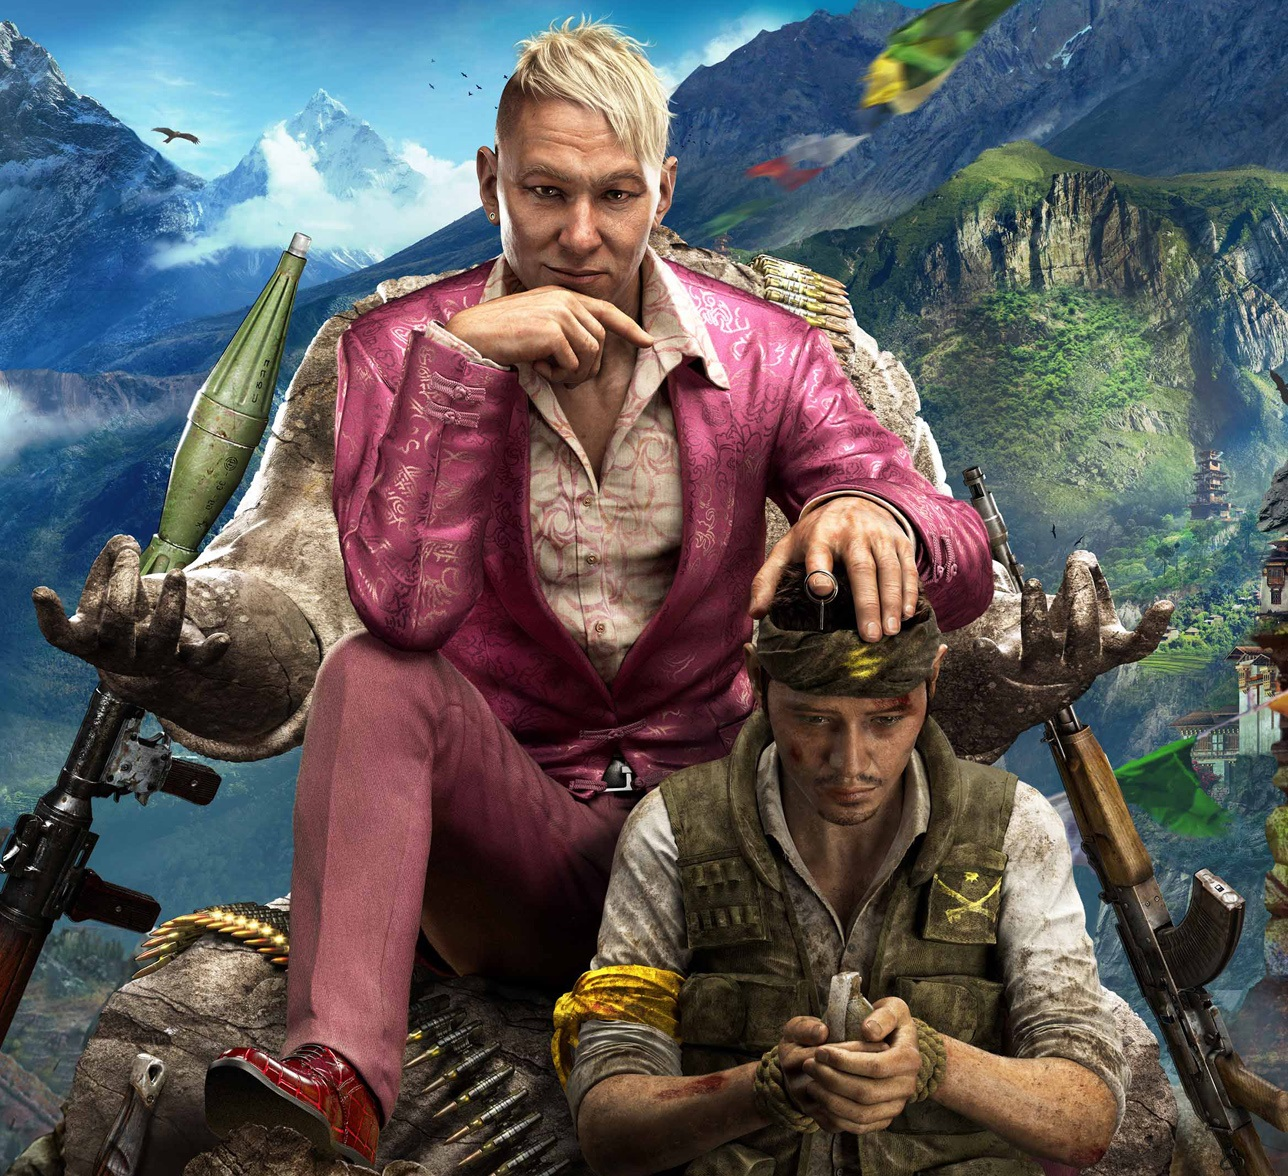 far cry 4 pc benchmark performance hardwarepal. Black Bedroom Furniture Sets. Home Design Ideas